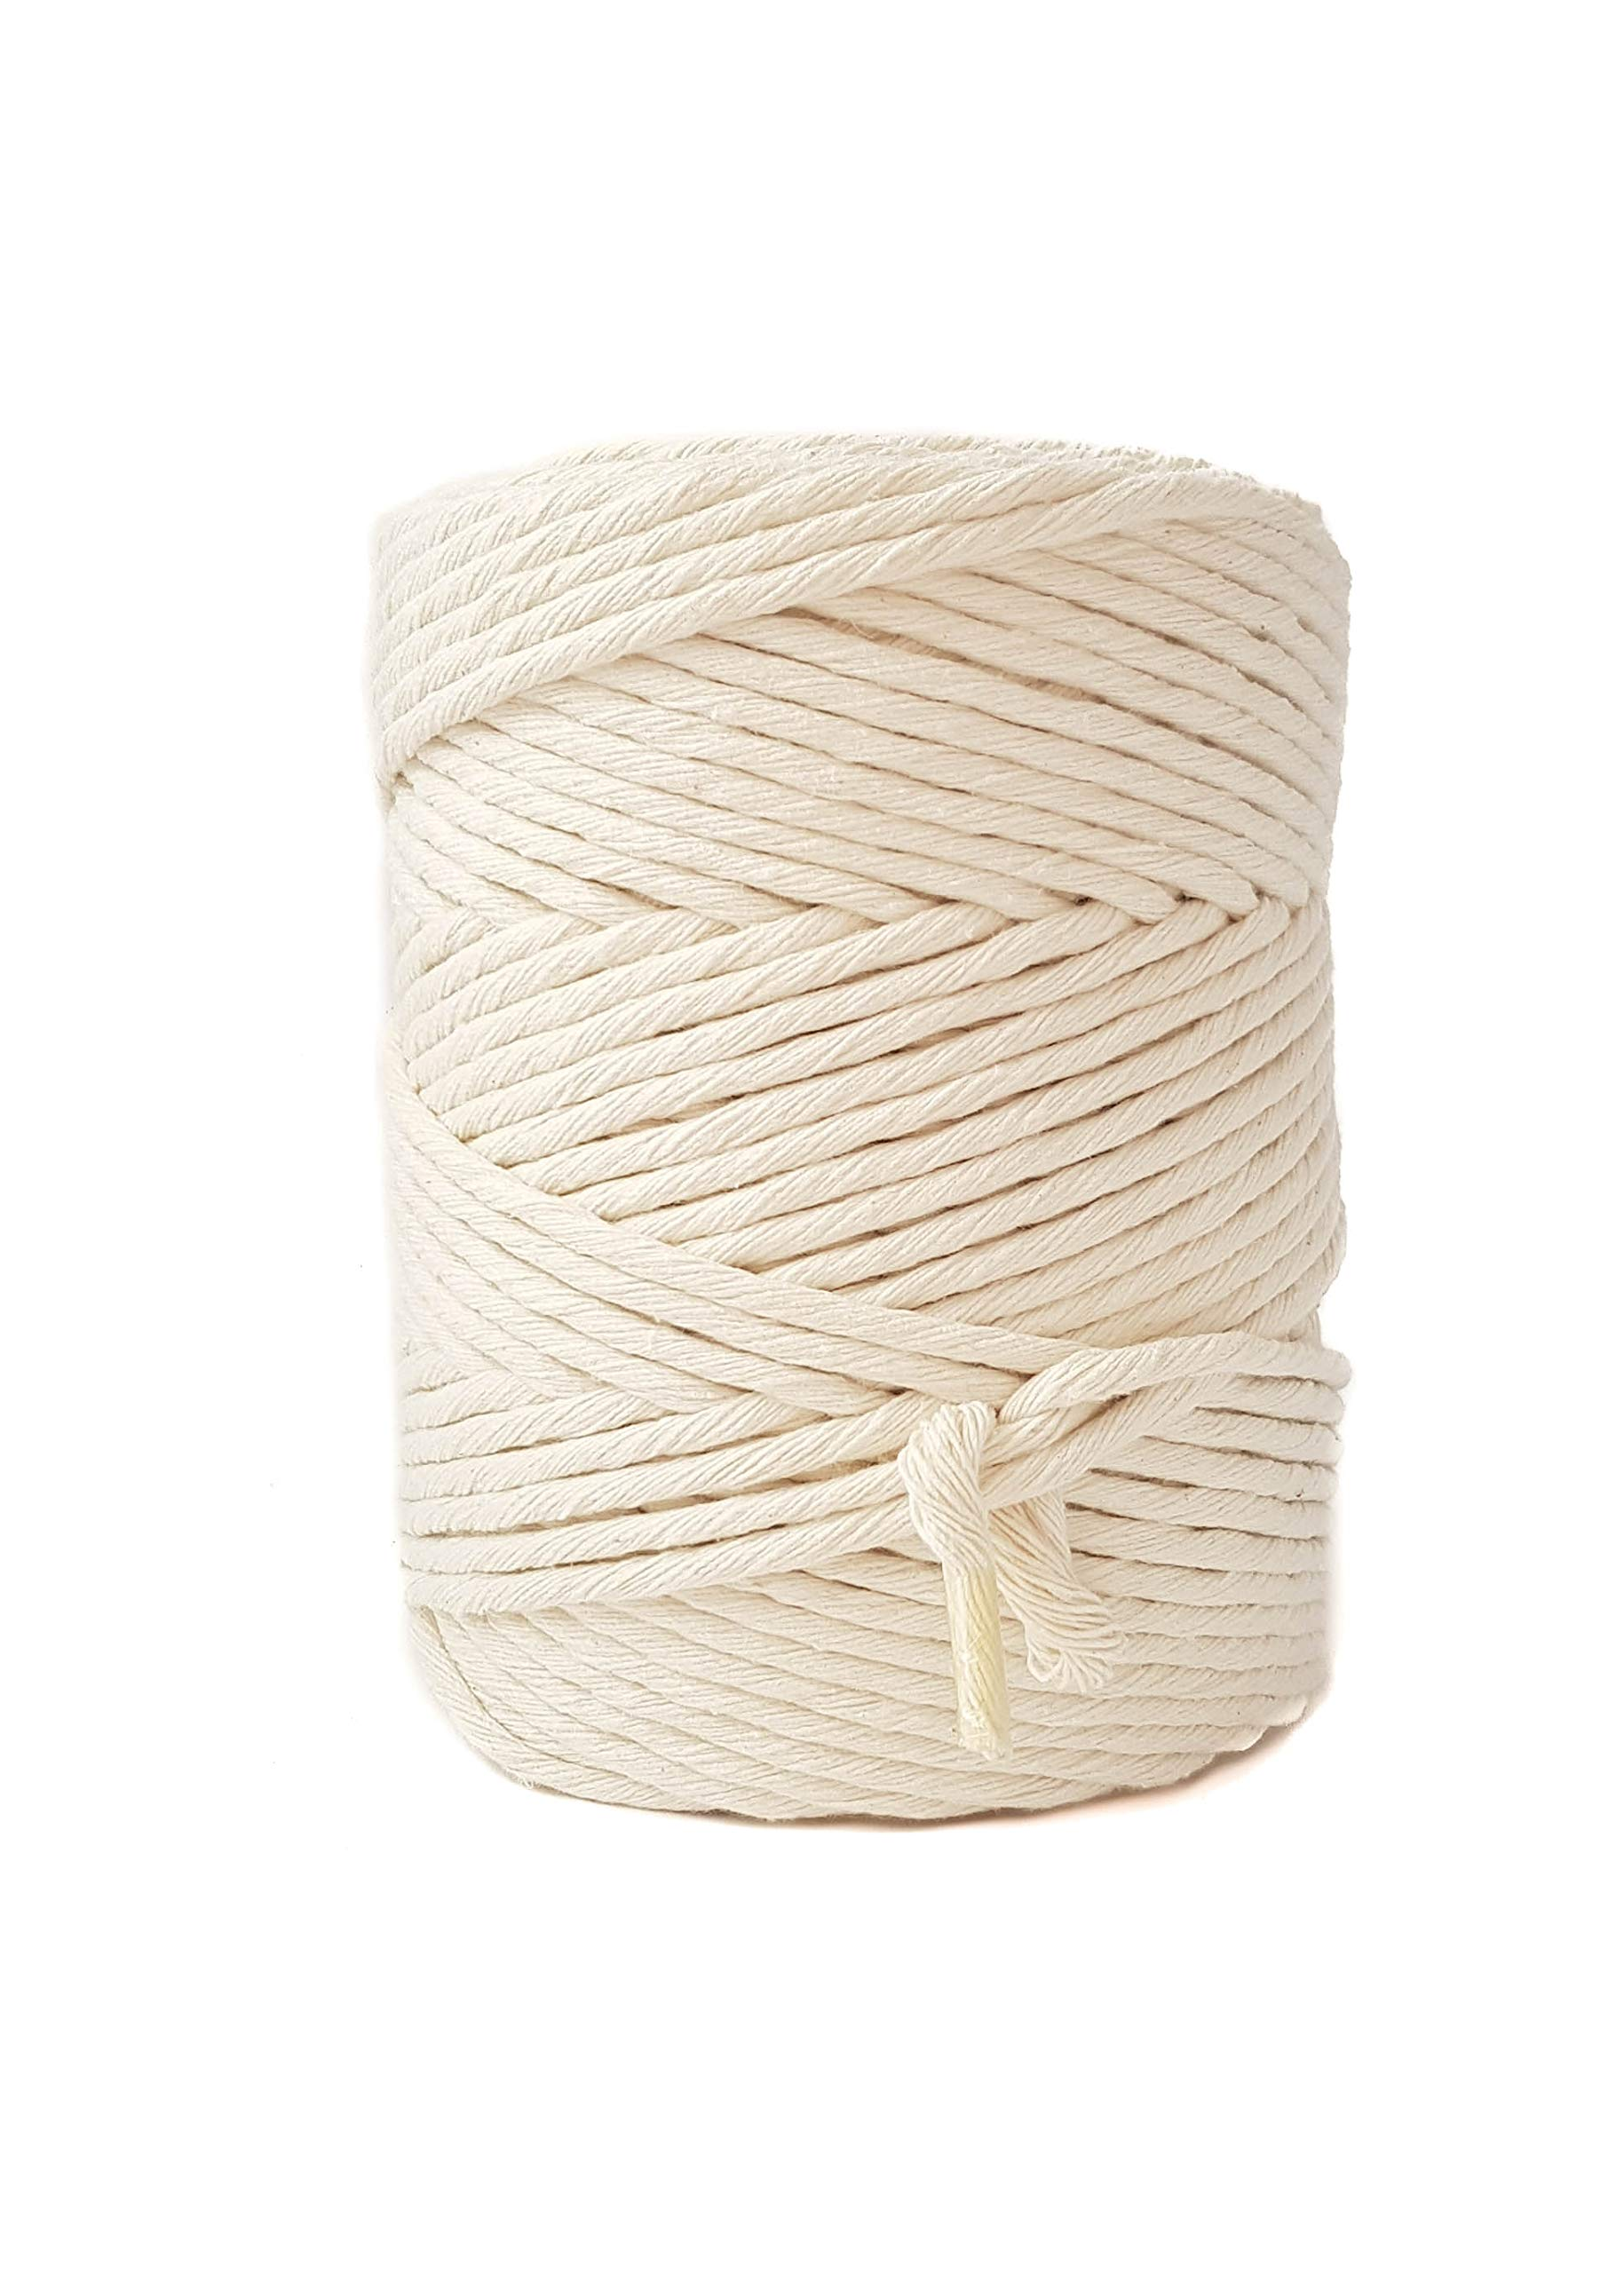 Single Strand Cotton Cord 4mm Macrame Cord 590 feet Macrame Rope for DIY Crafts by MB Cordas (Image #2)